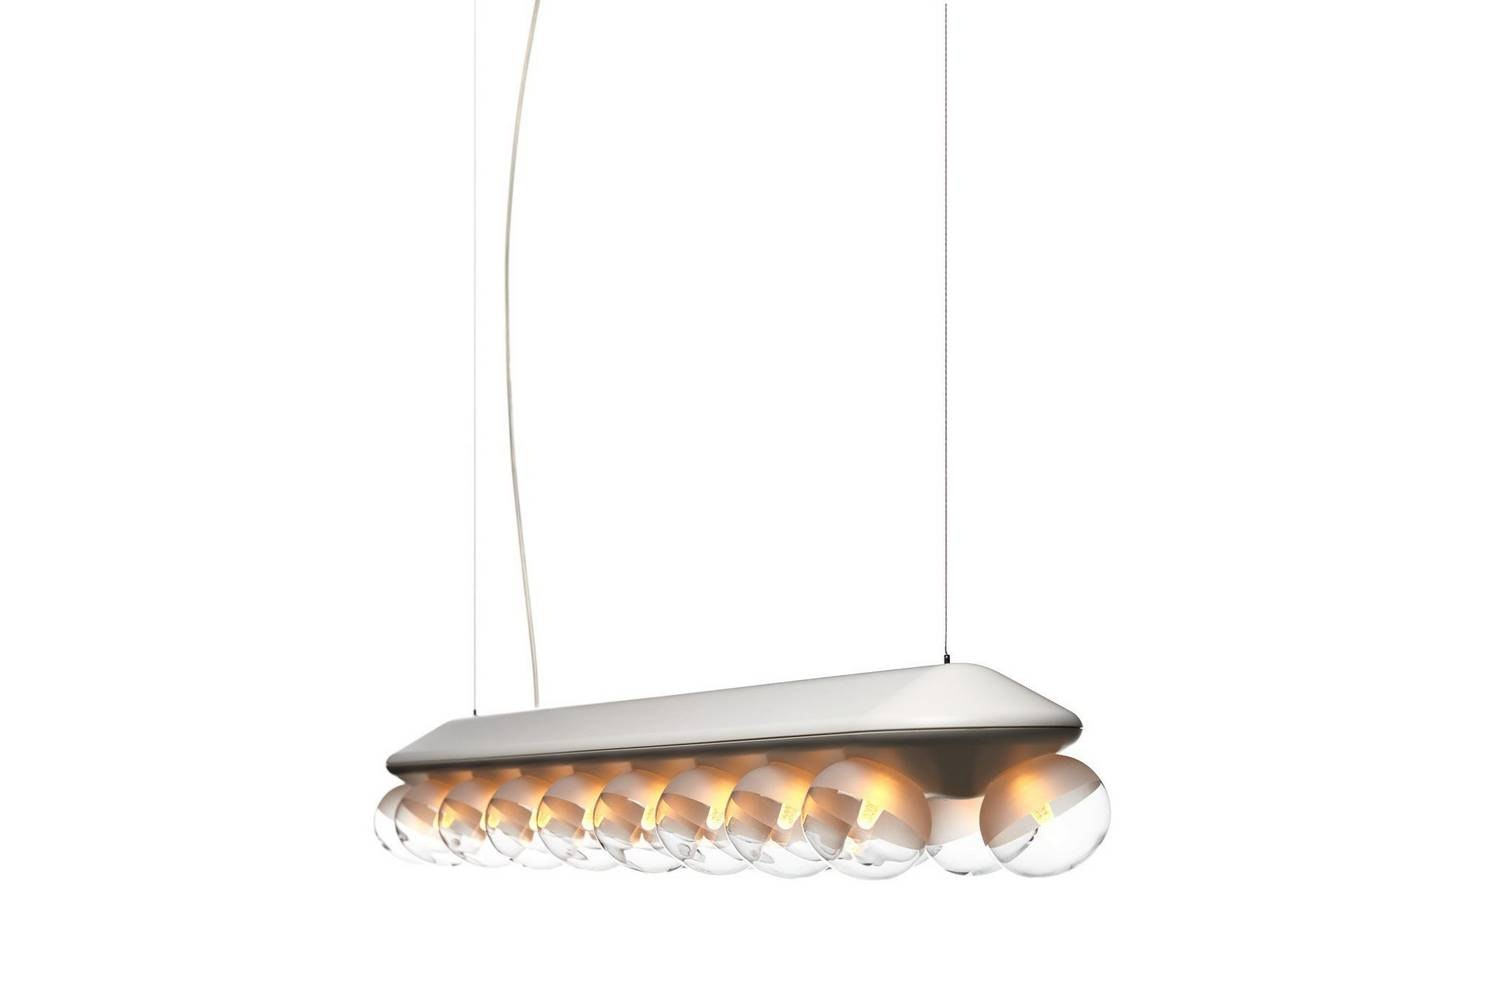 Prop Light by Bertjan Pot for Moooi